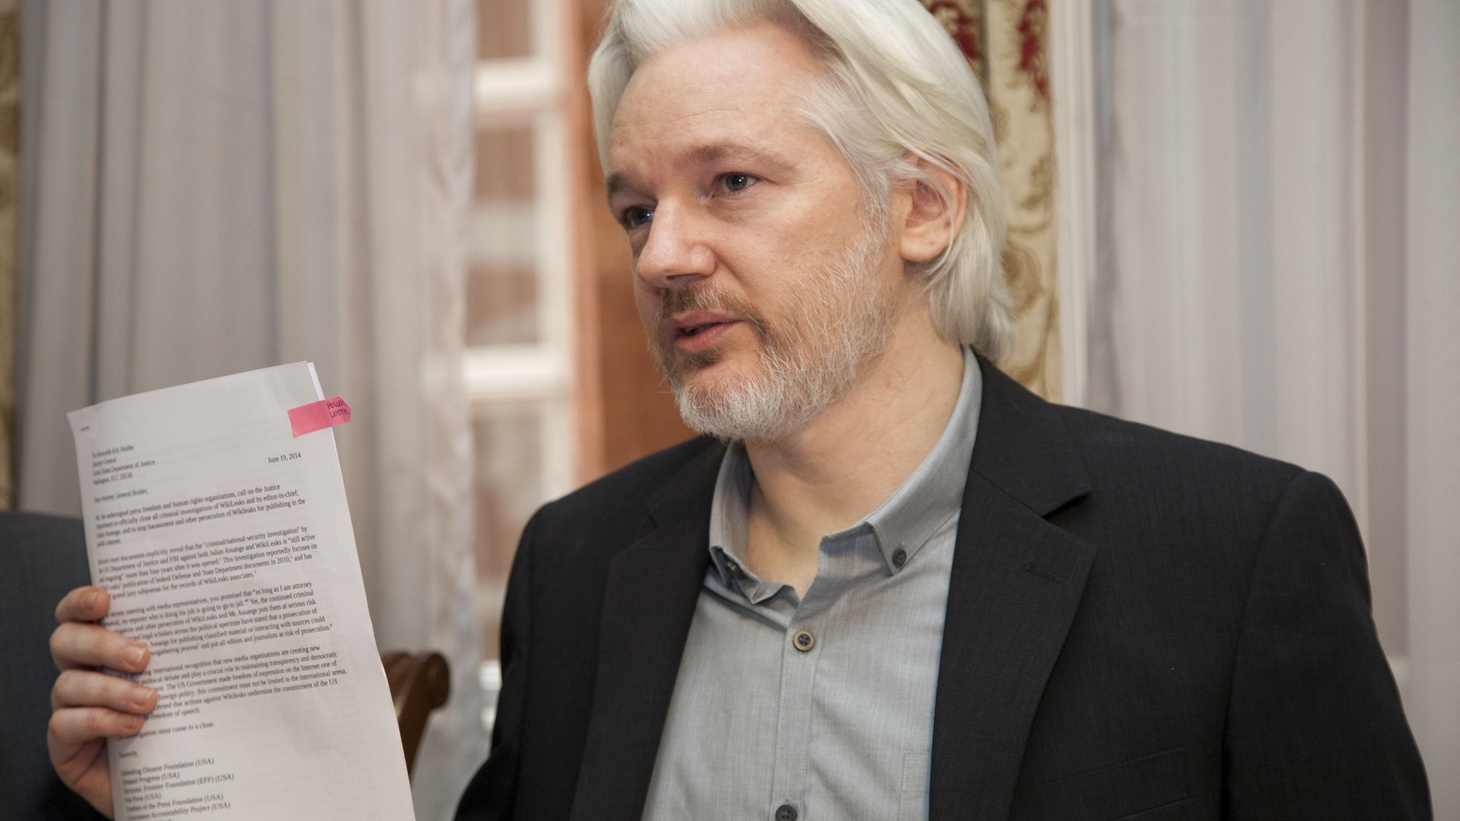 London (United Kingdom), August 18, 2014, Foreign Minister Ricardo Patiño and Julian Assange offered a press conference with the presence of international media.